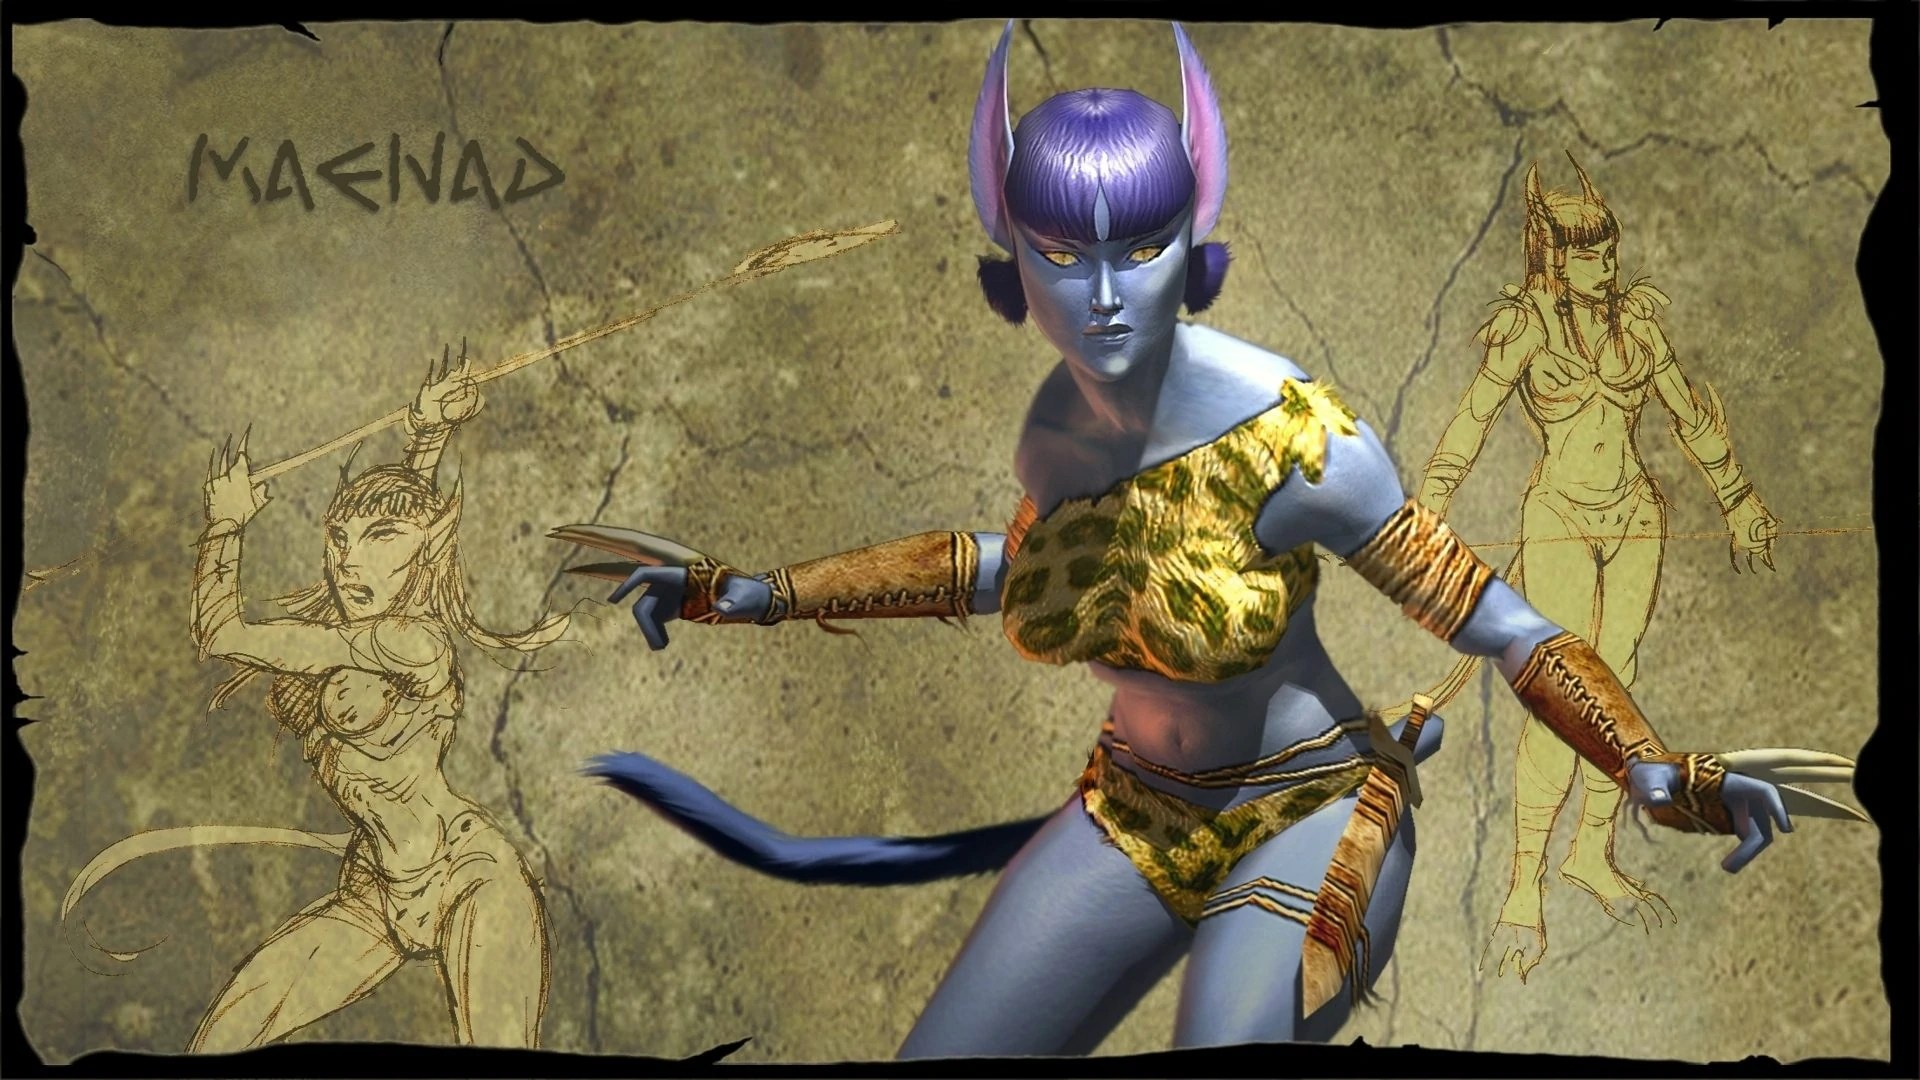 3d Emoticons Wallpapers Titan Quest Anniversary Edition Maenad Steam Trading